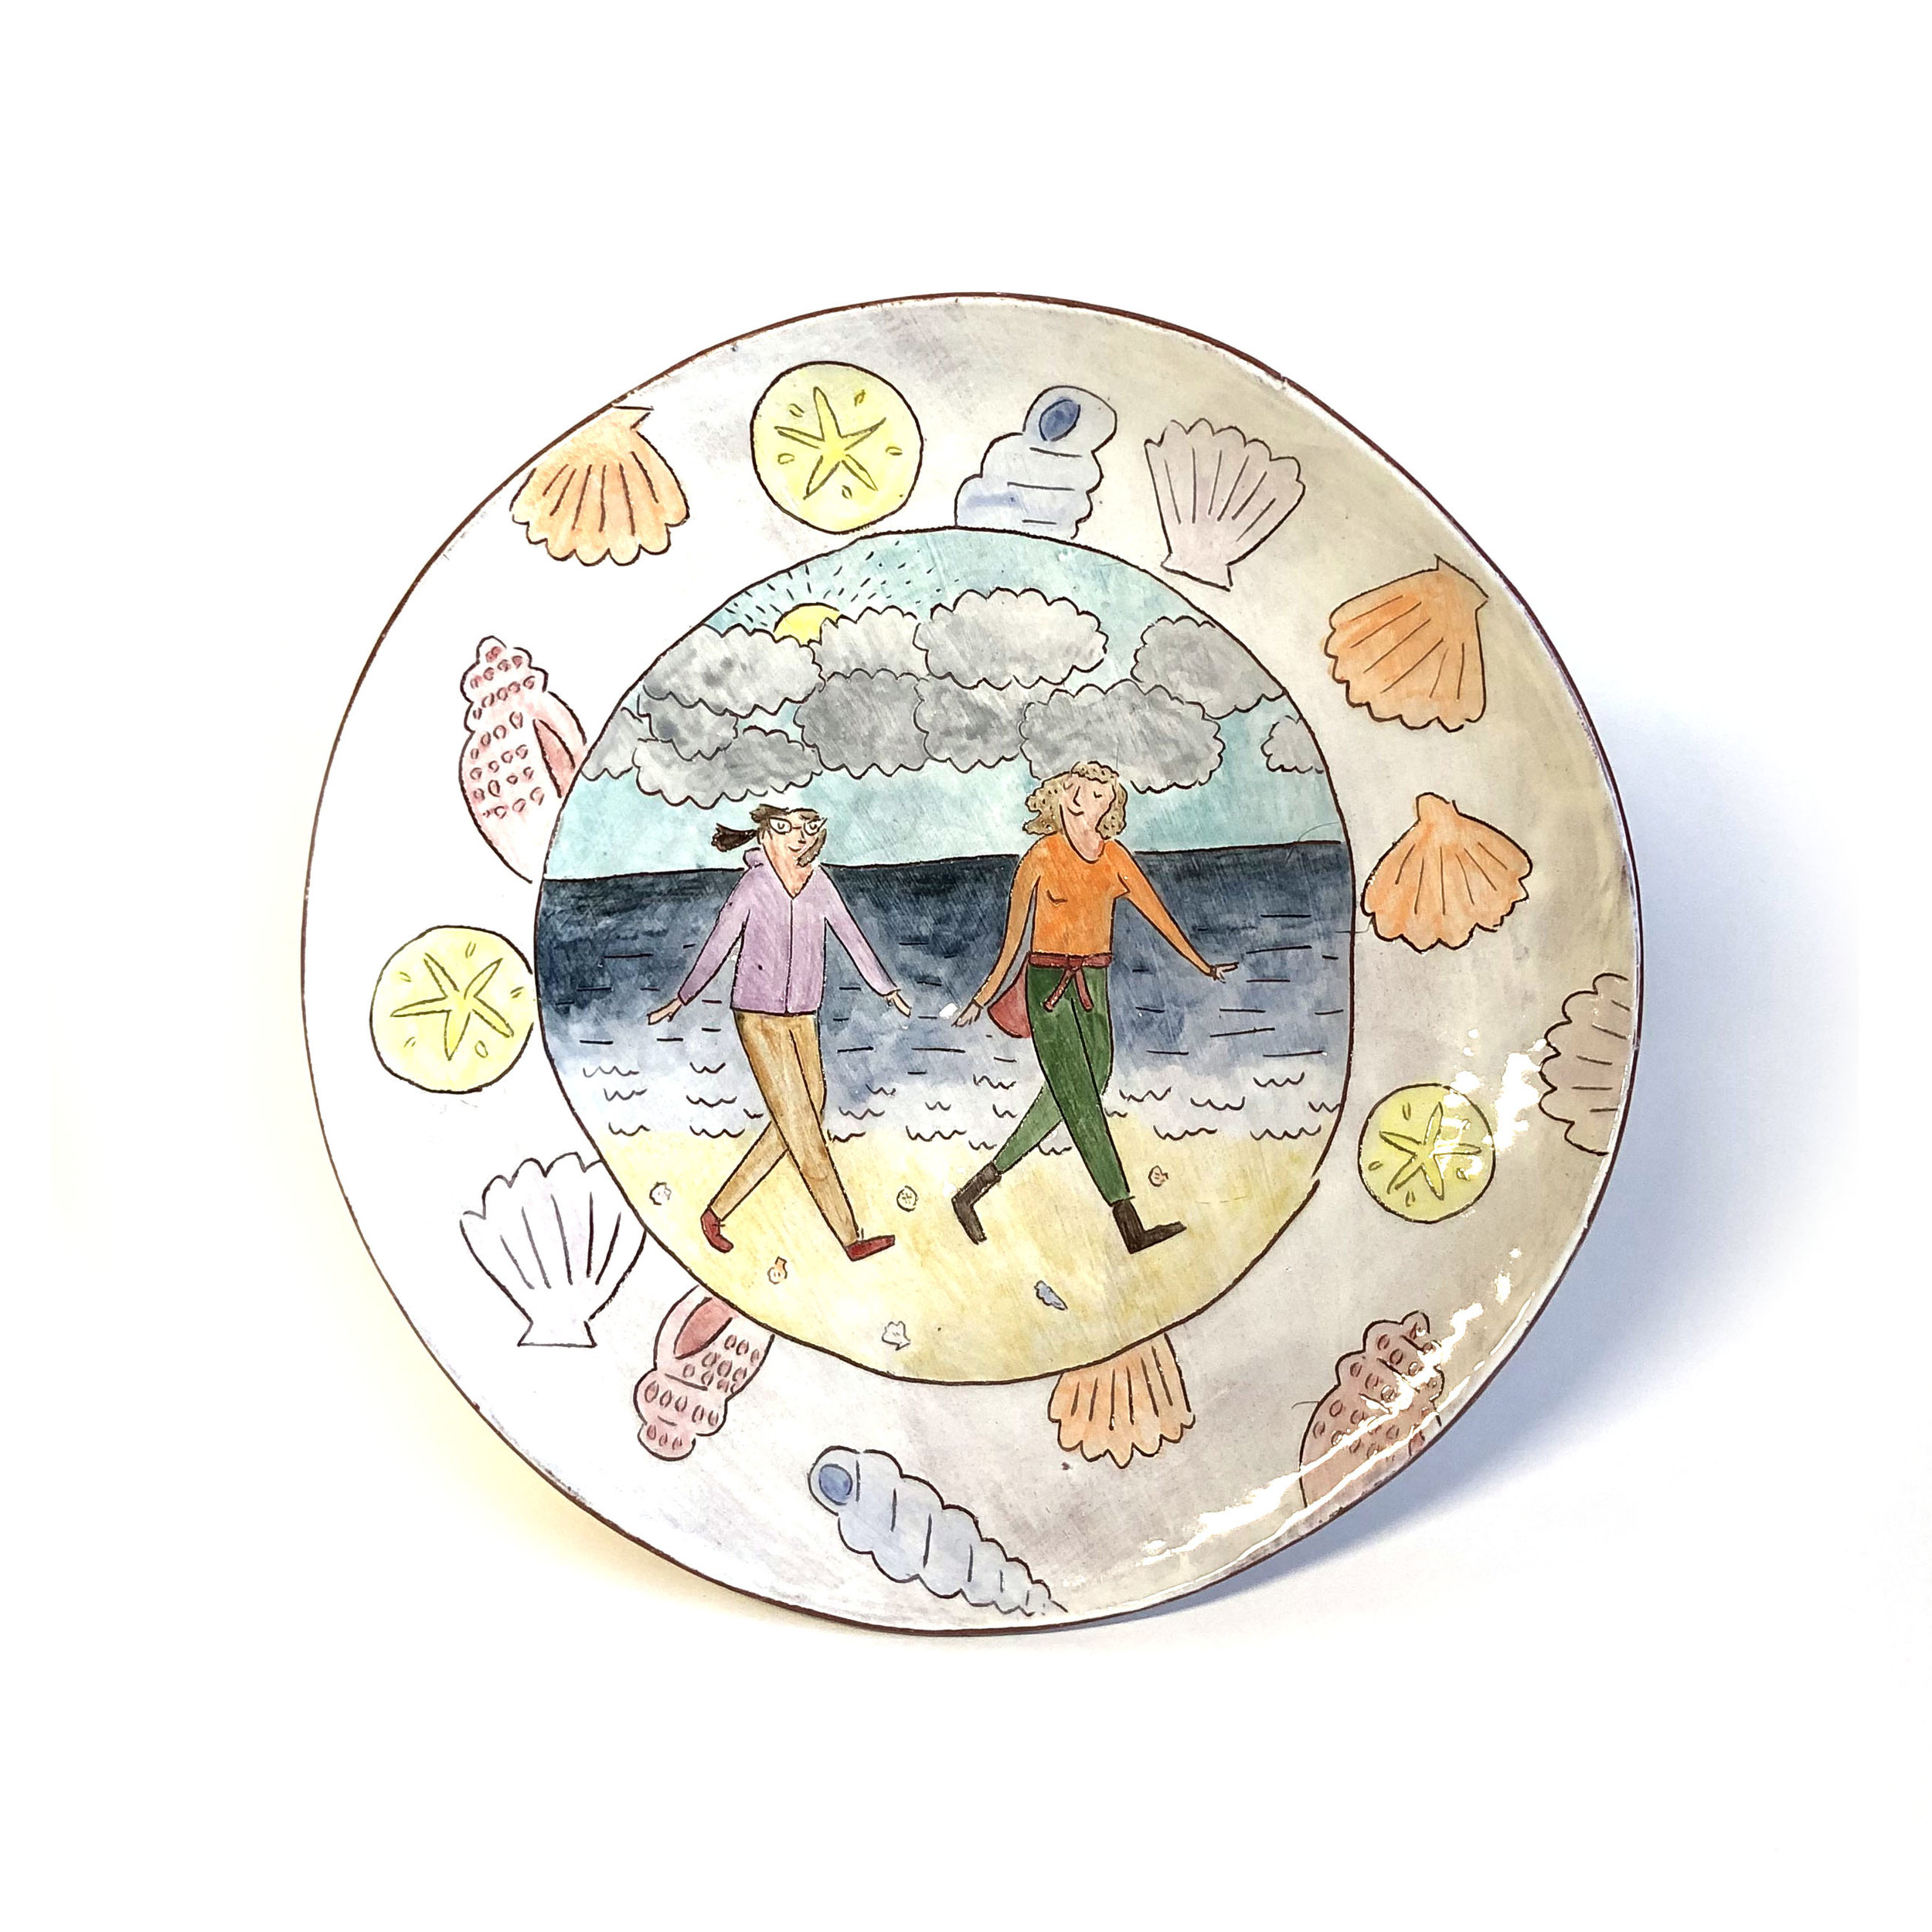 - A sweet plate memorializing a special friendship that is filled with long walks on windy beaches.